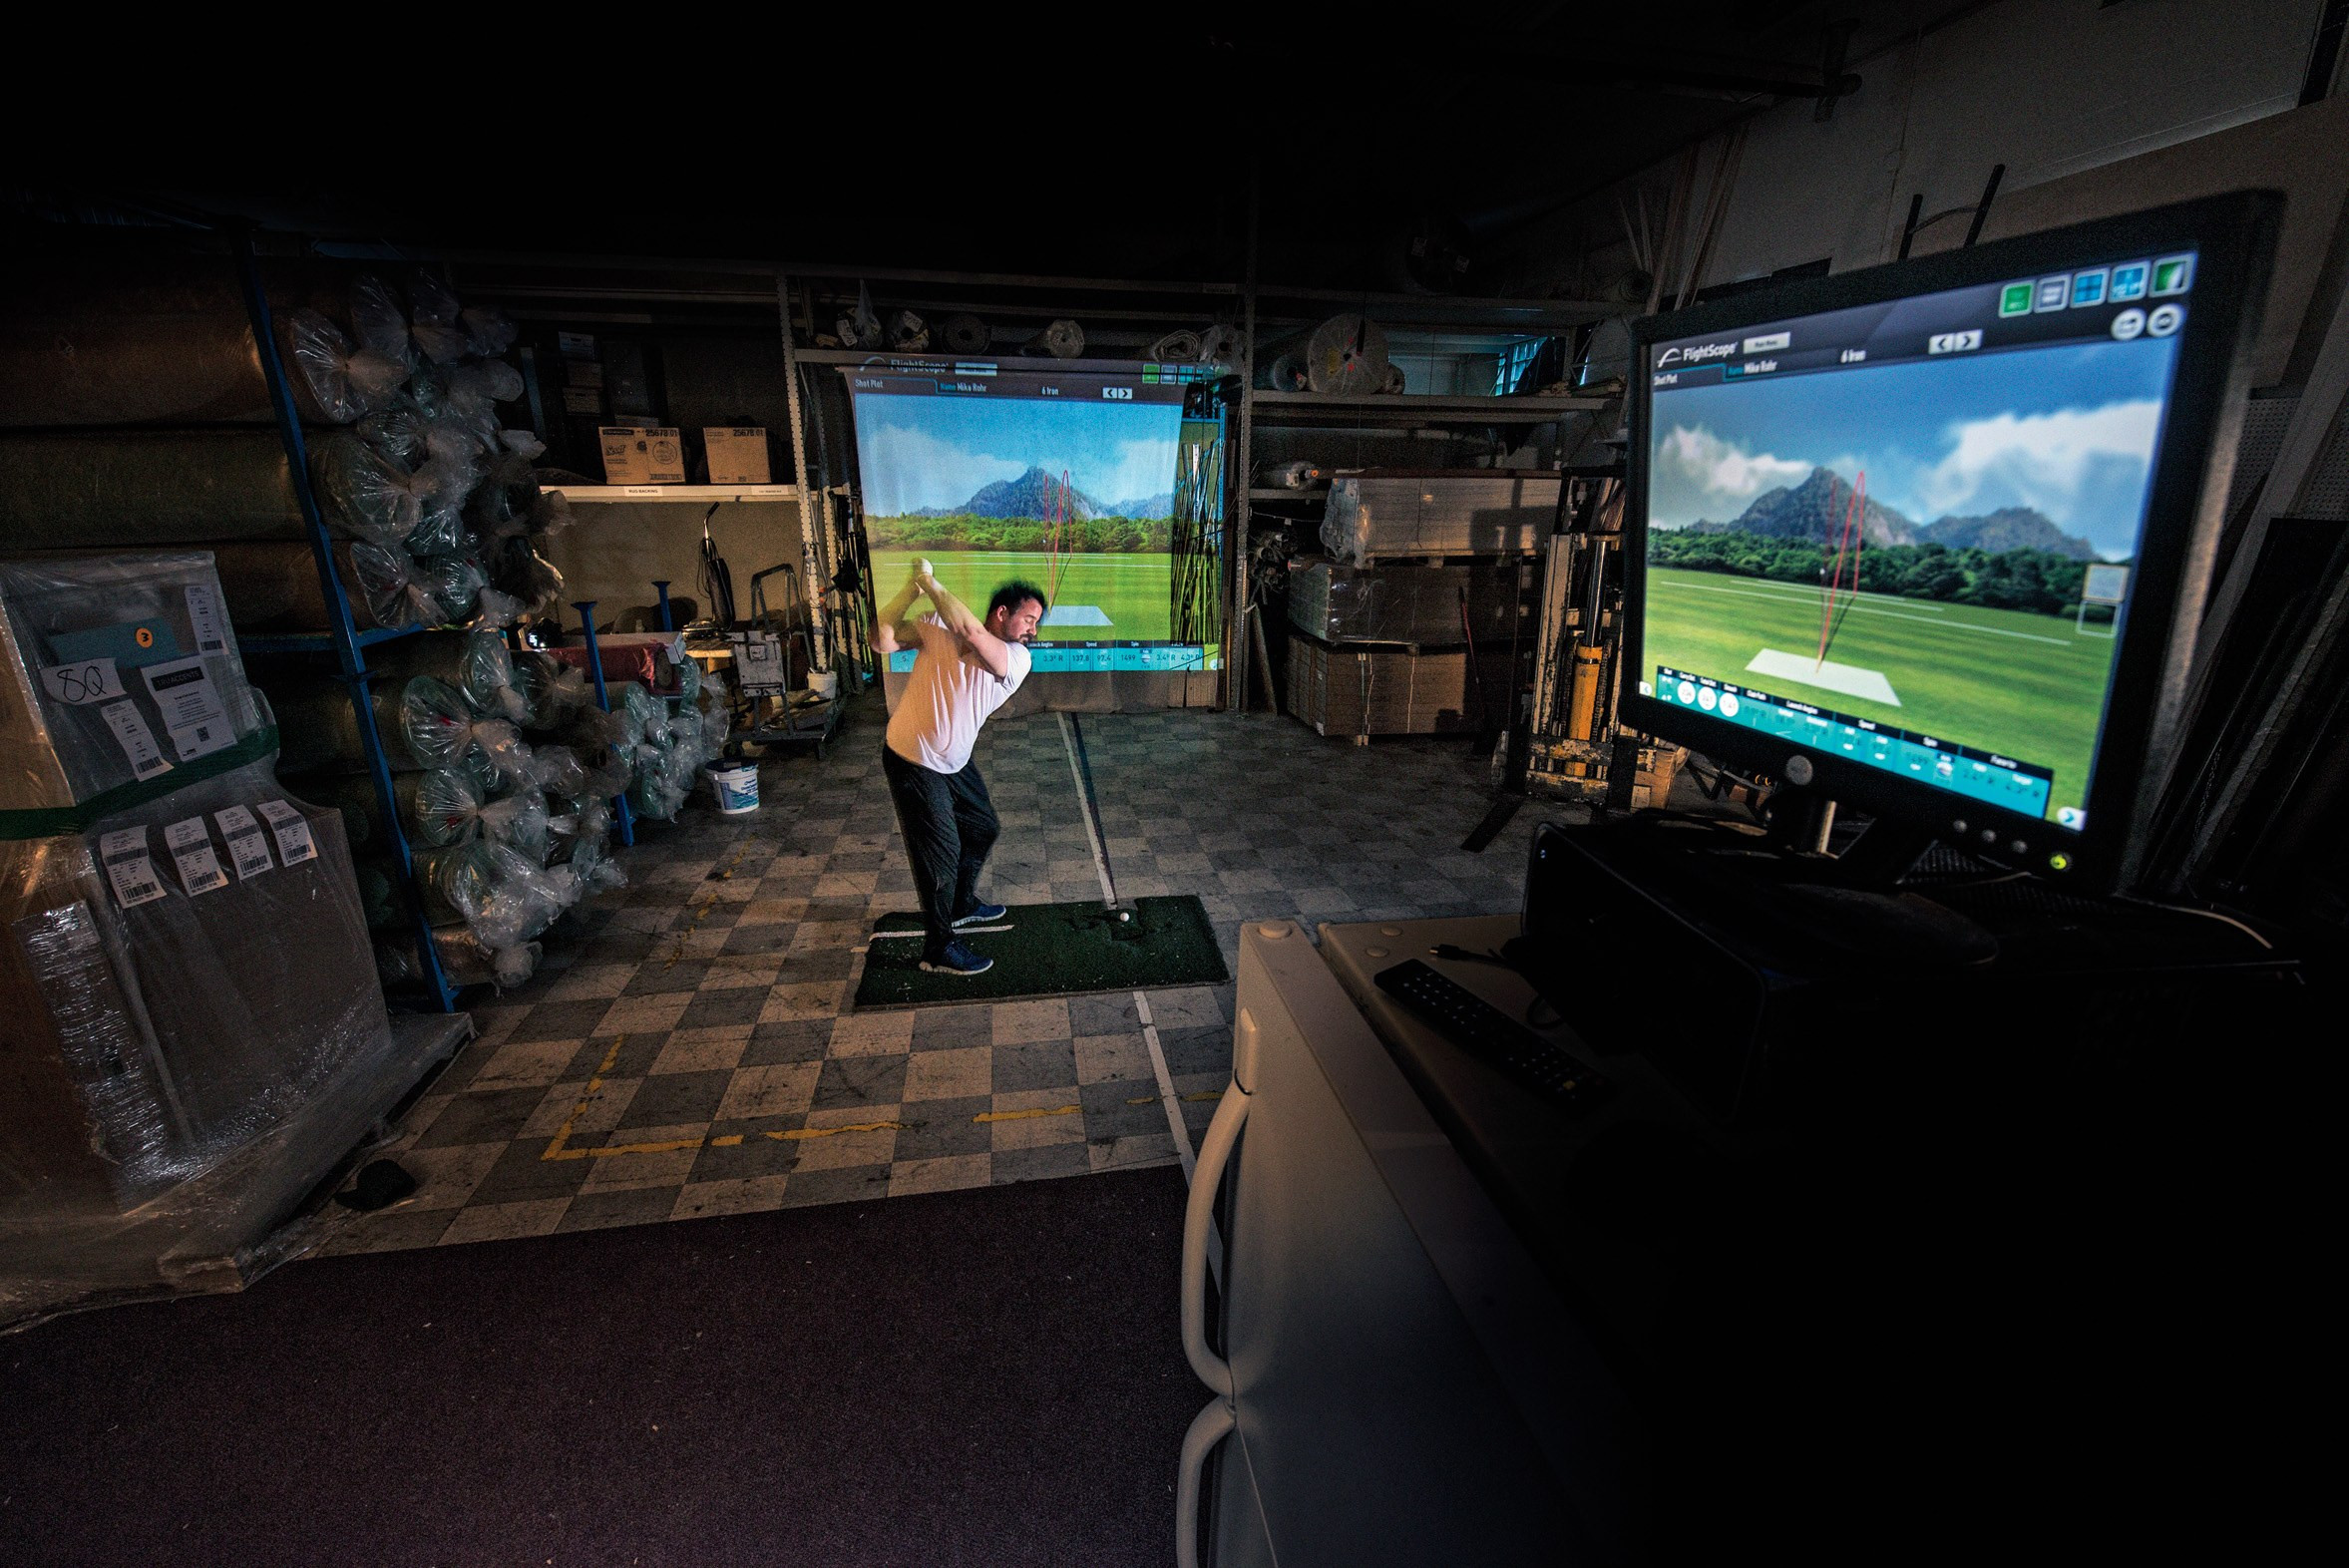 Best ideas about DIY Golf Simulator . Save or Pin Do It Yourself Golf How To Build Your Own Simulator Now.